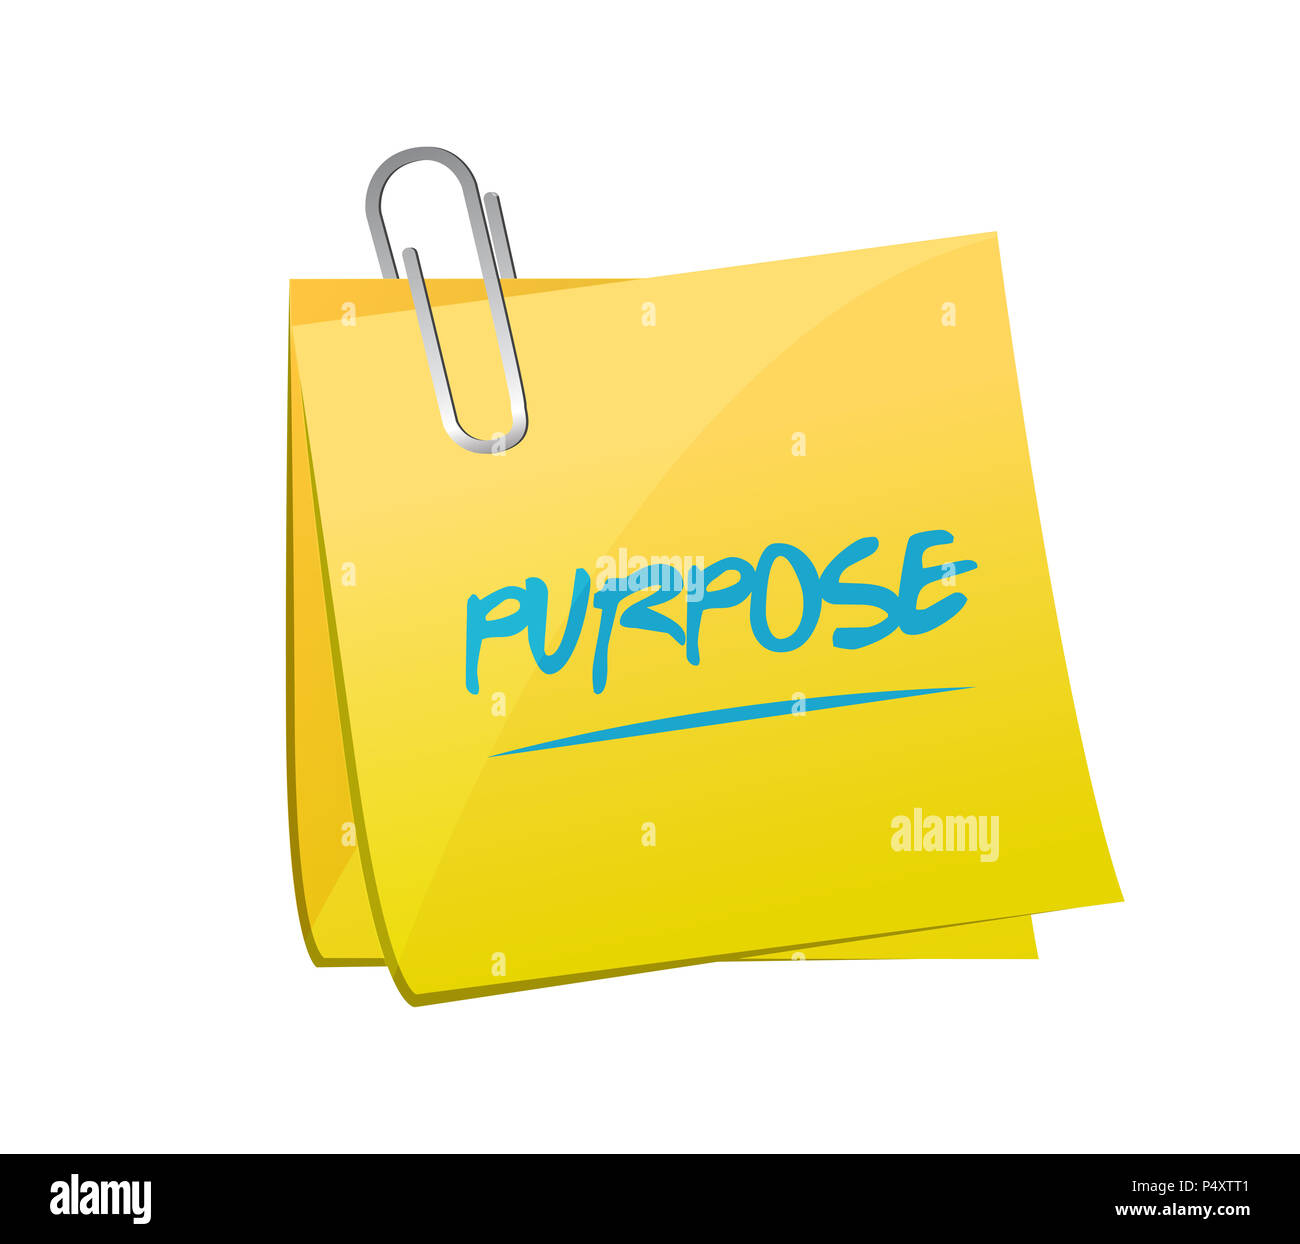 pursose note message. hand written note. isolated over a white background - Stock Image